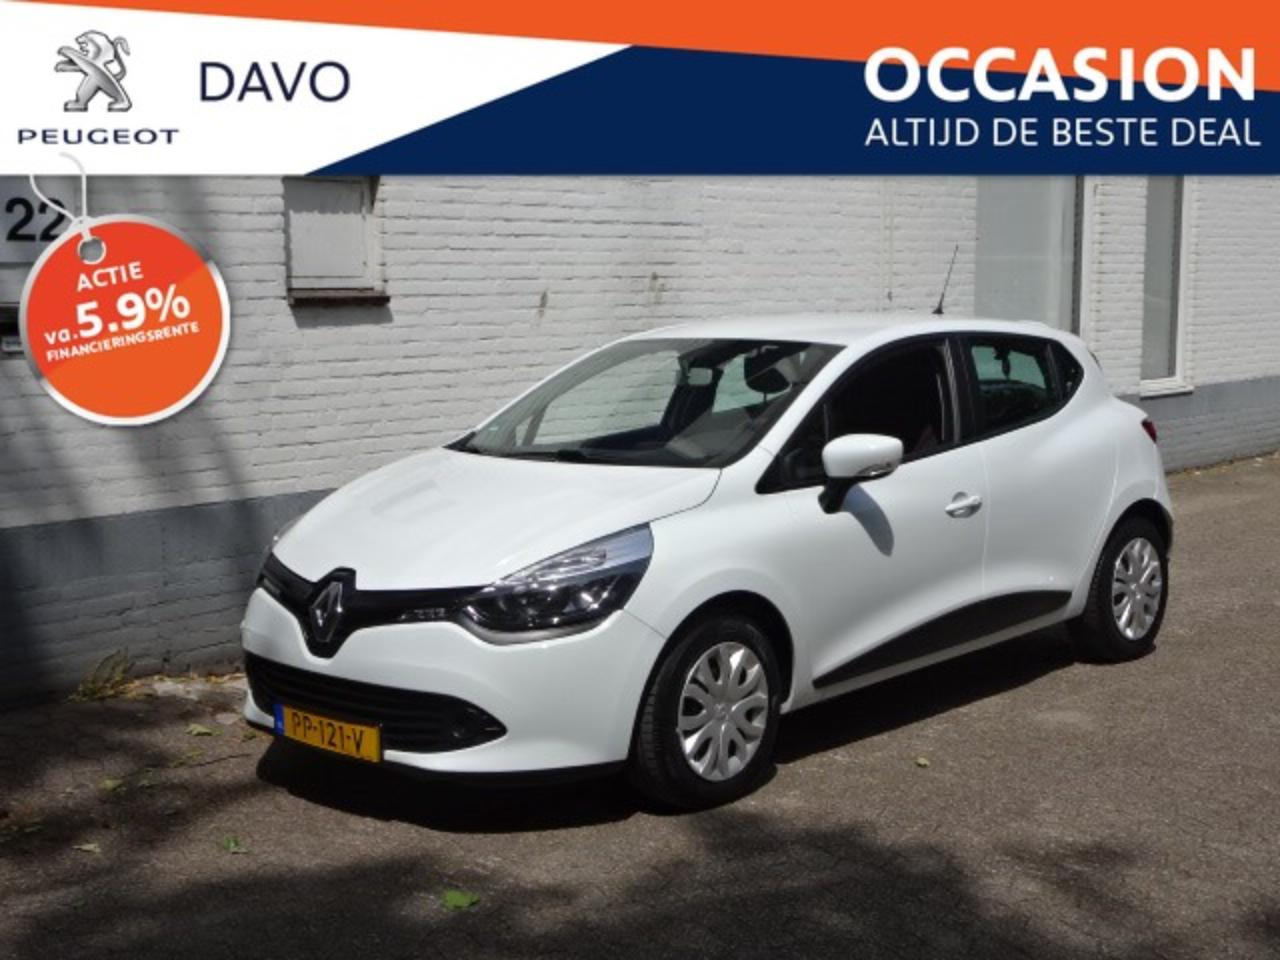 Renault Clio 1.2 Collection Navigatie, airconditioning Financie